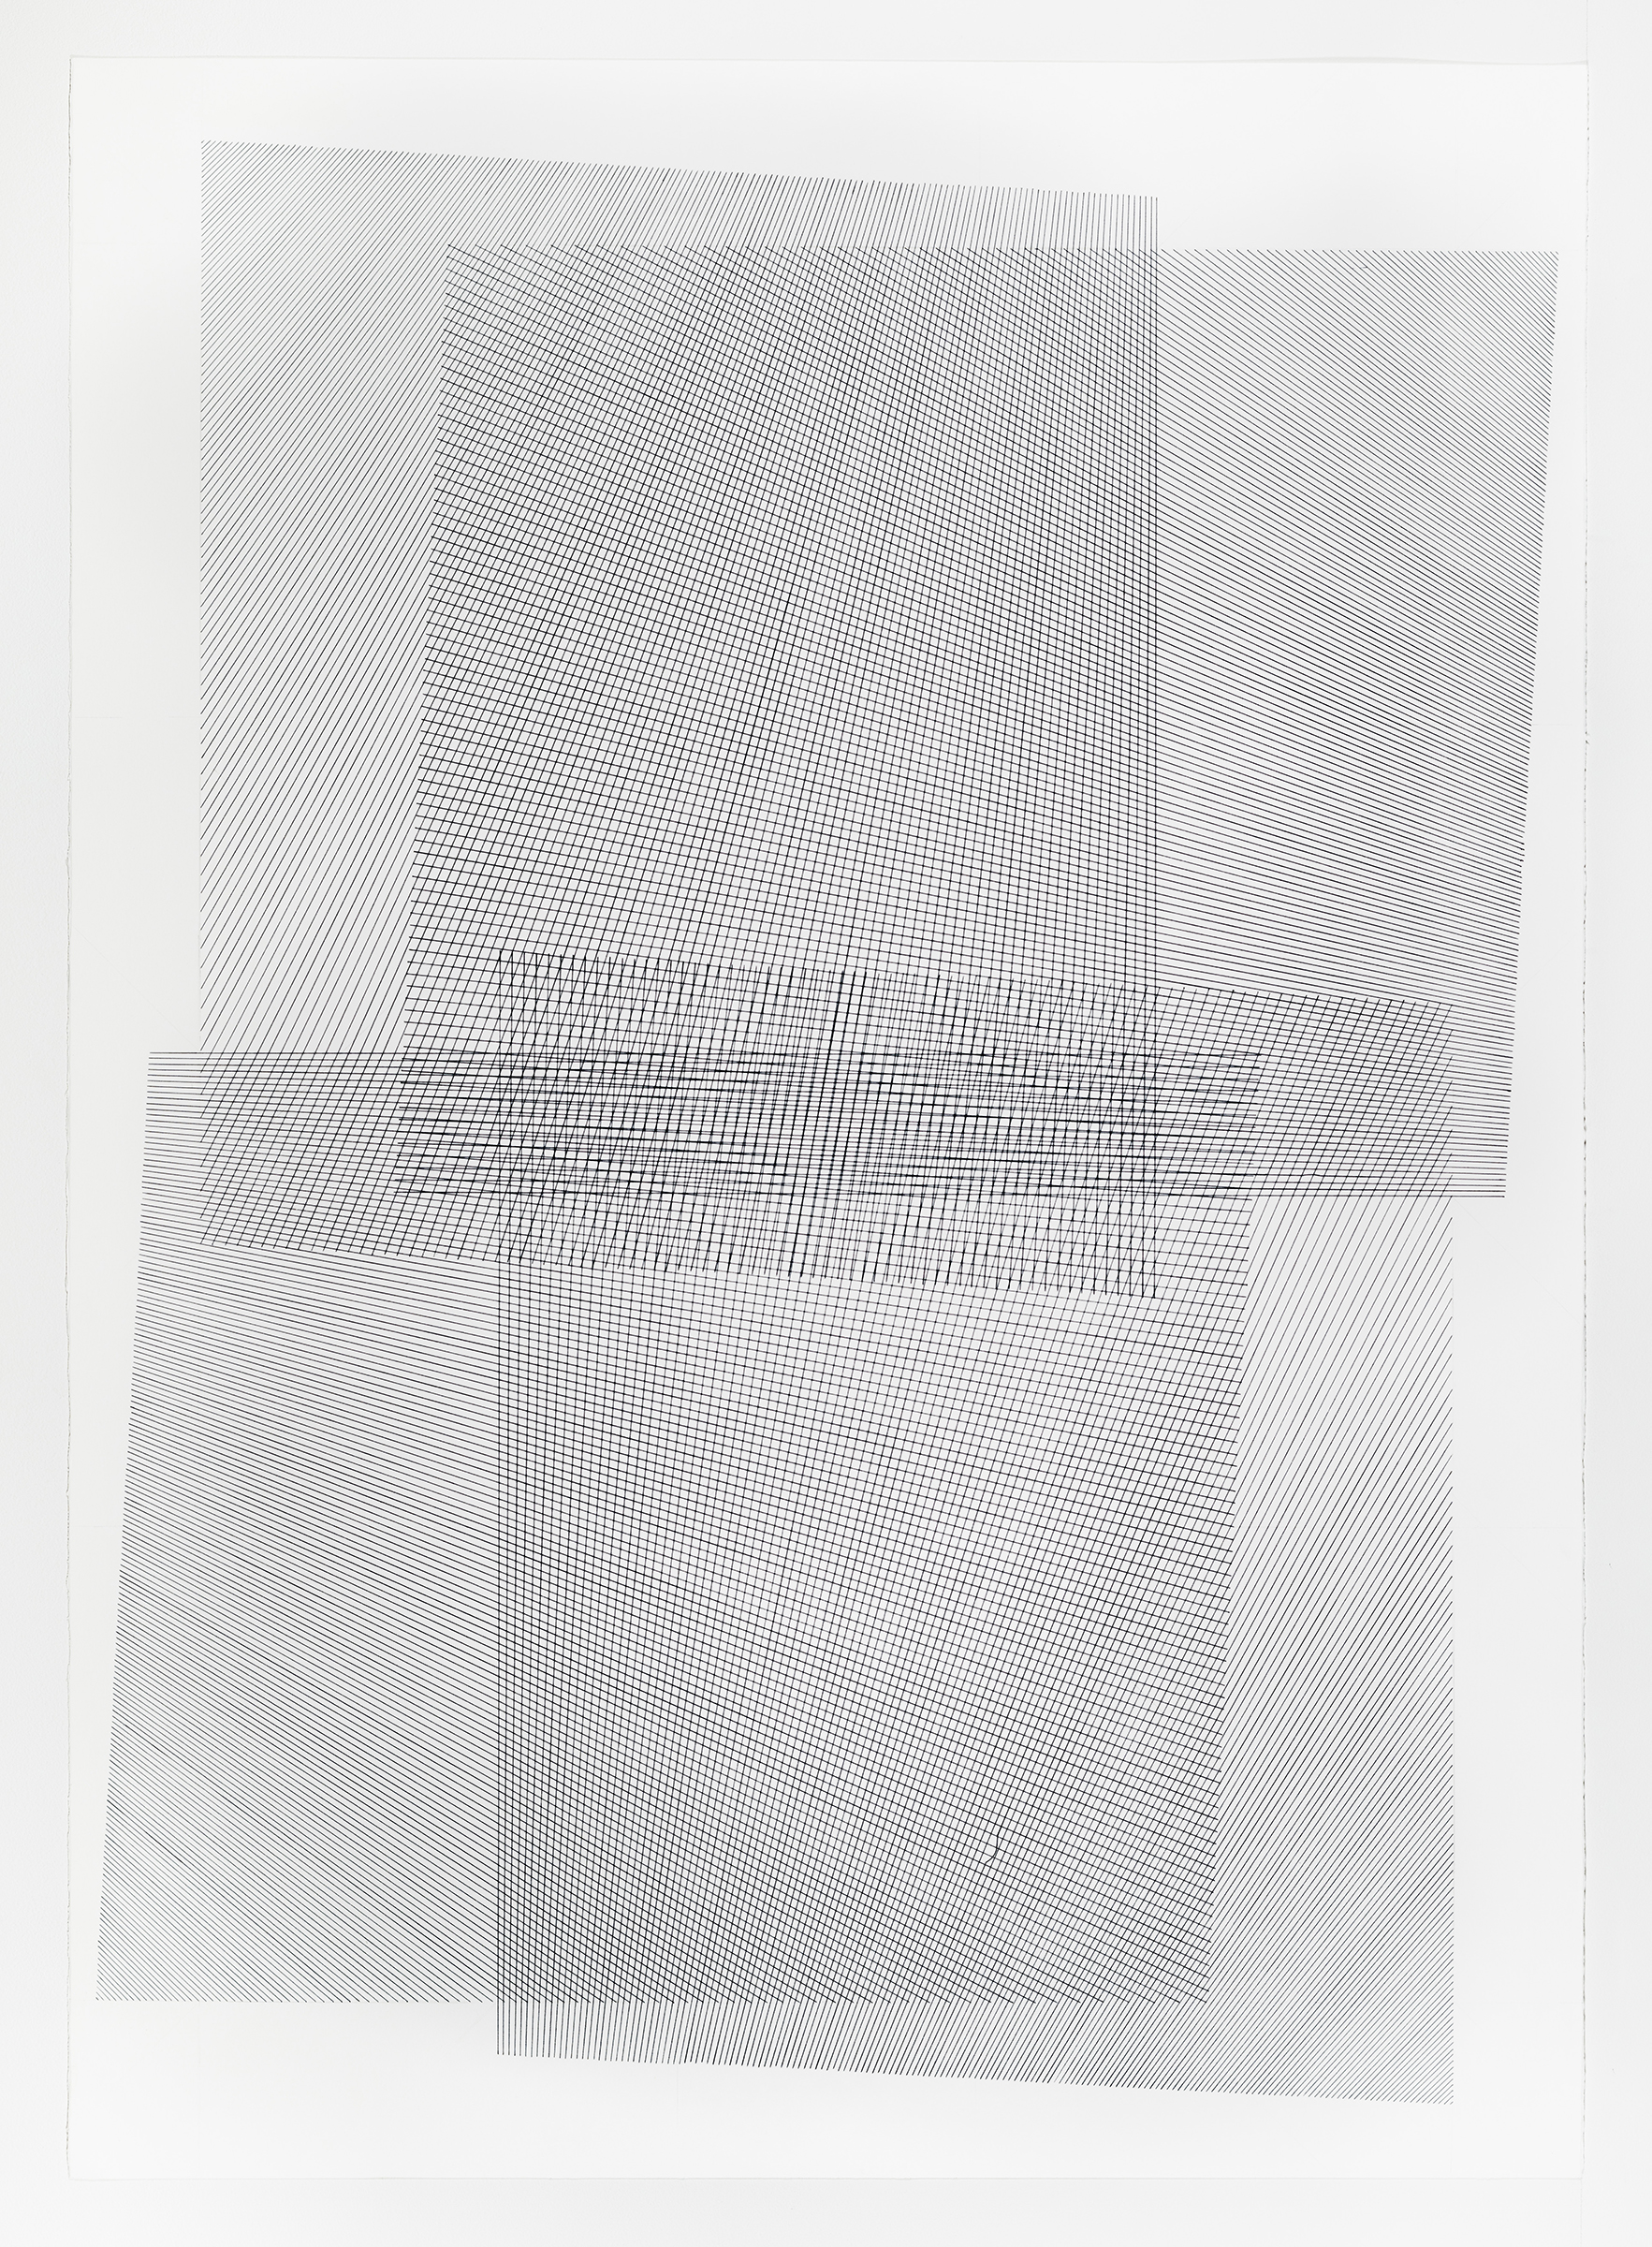 1 of 5; additive series, grey, 40 x 30 inches, 2016